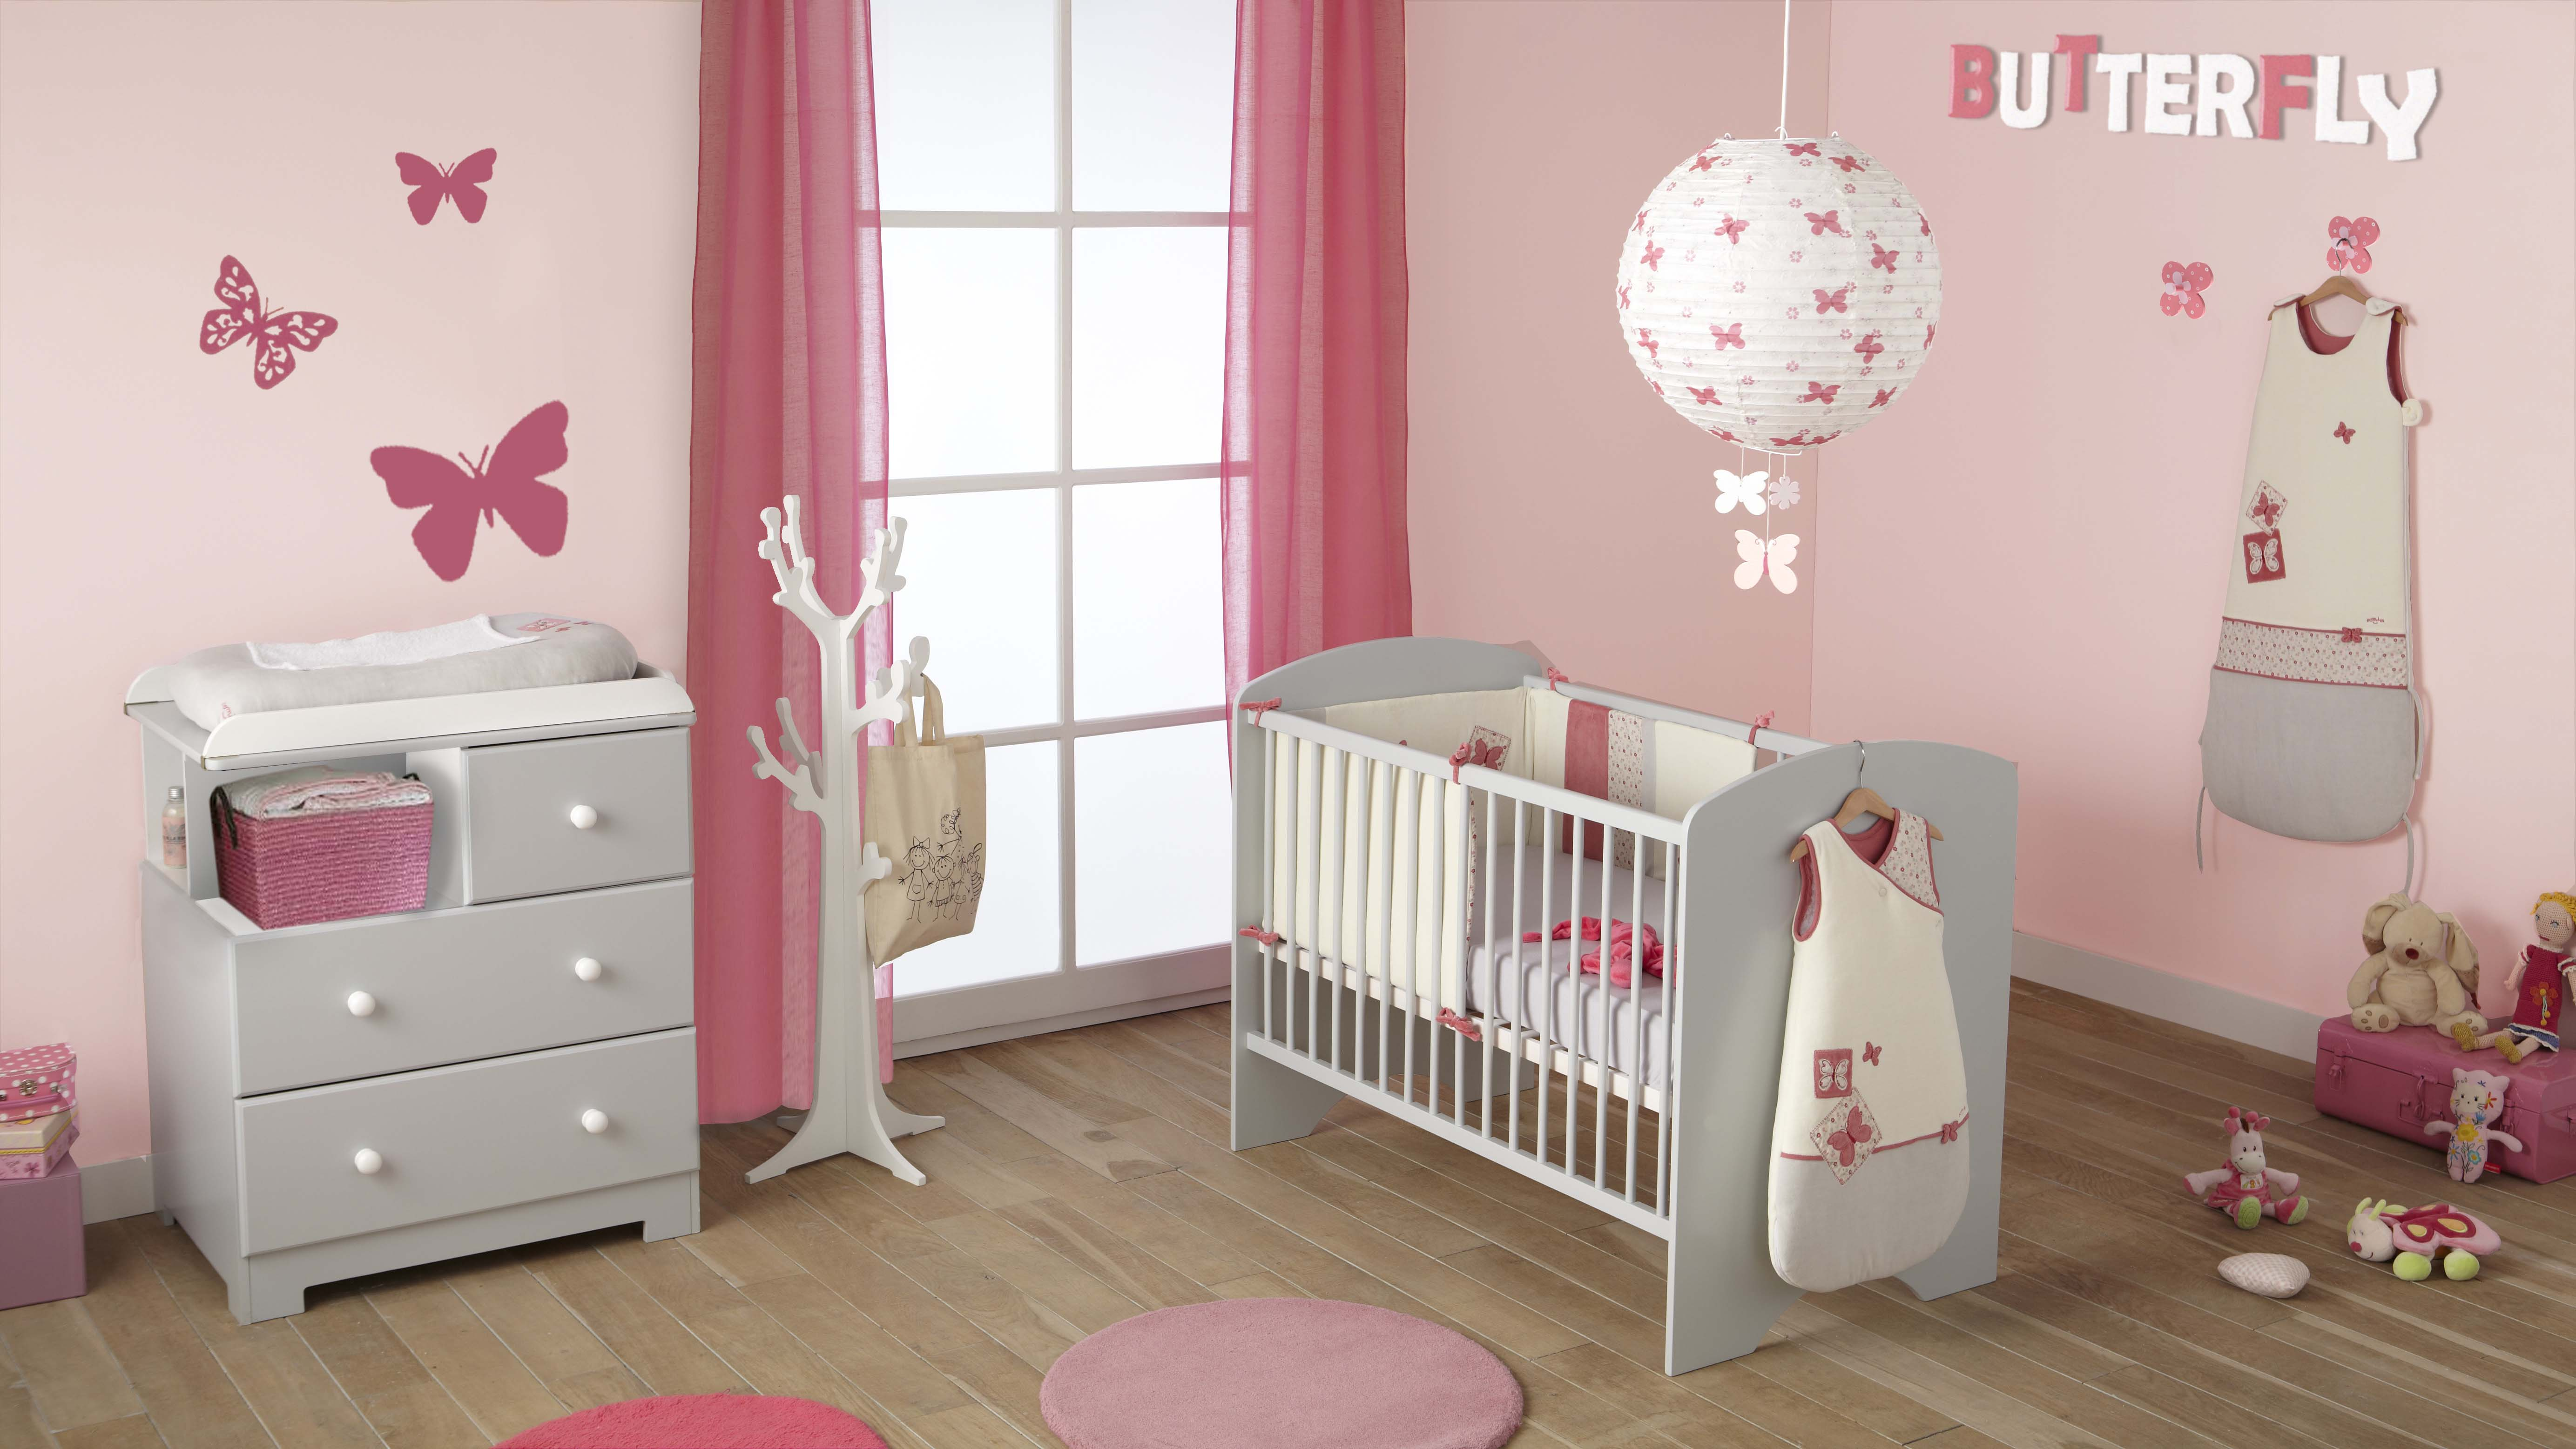 Stunning Belle Chambre Bebe Images - House Design - marcomilone.com